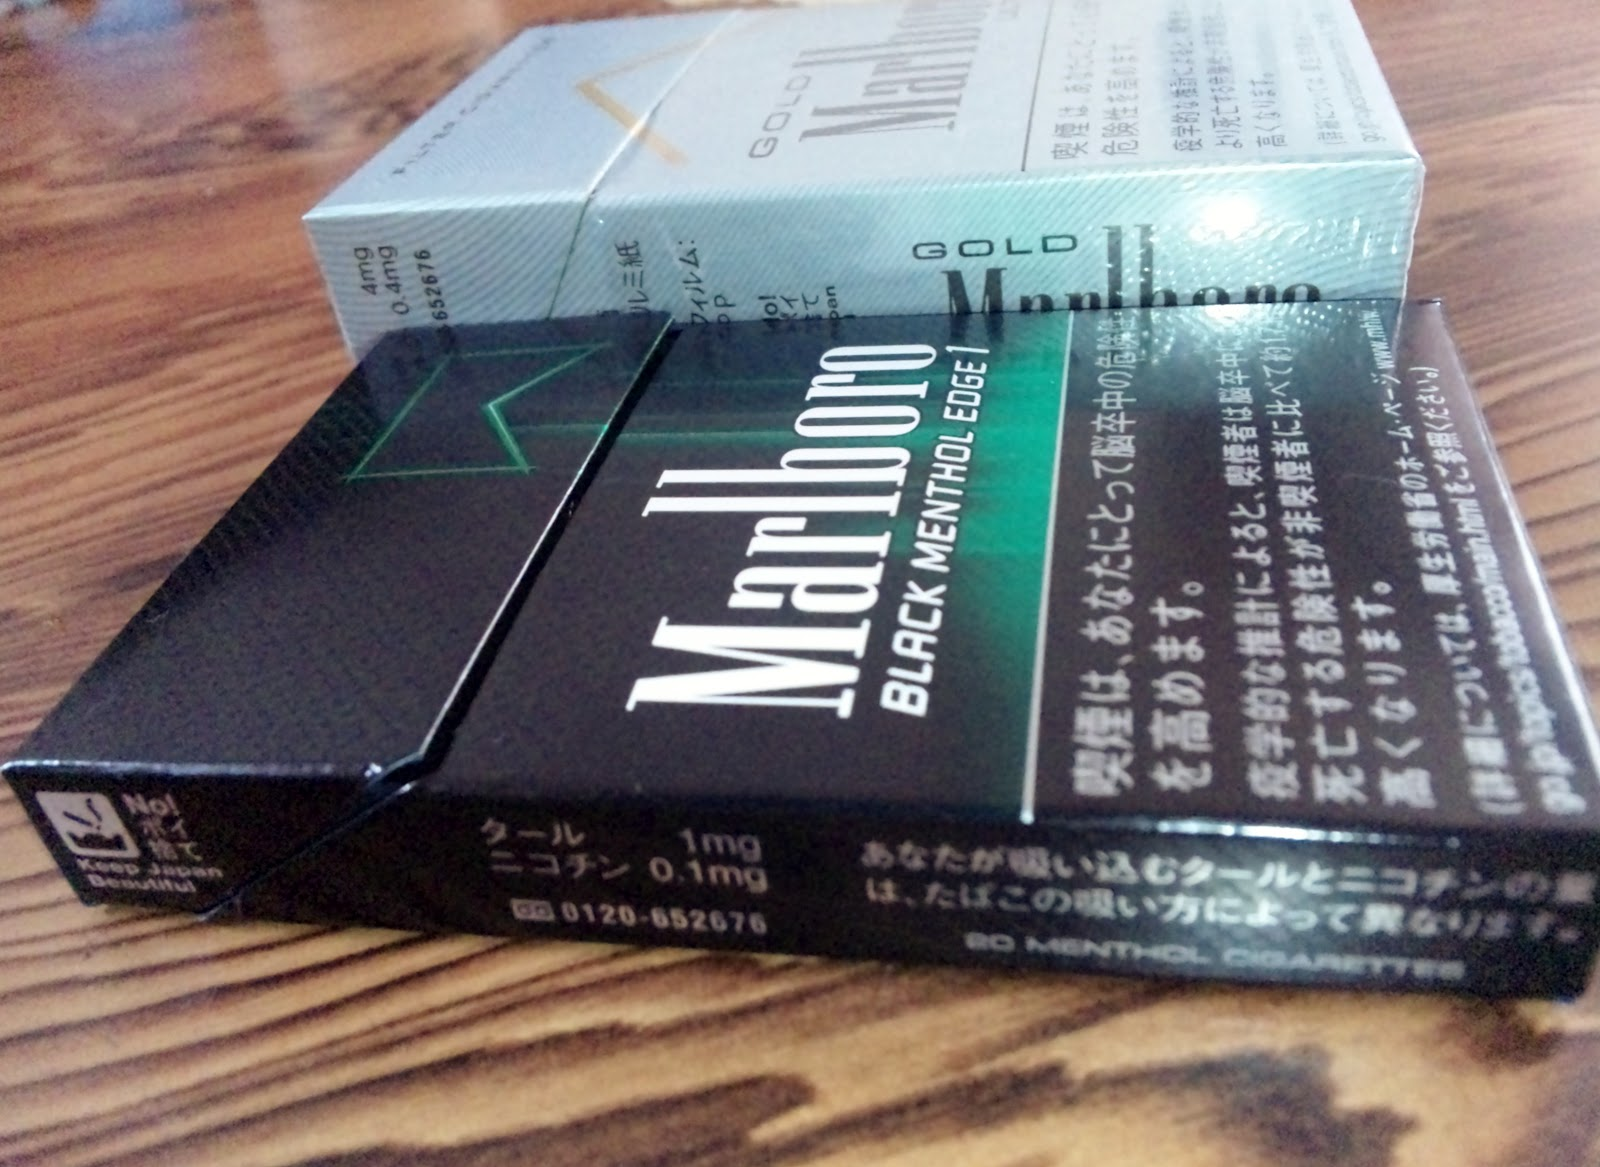 Buy Canadian cigarettes Marlboro online UK